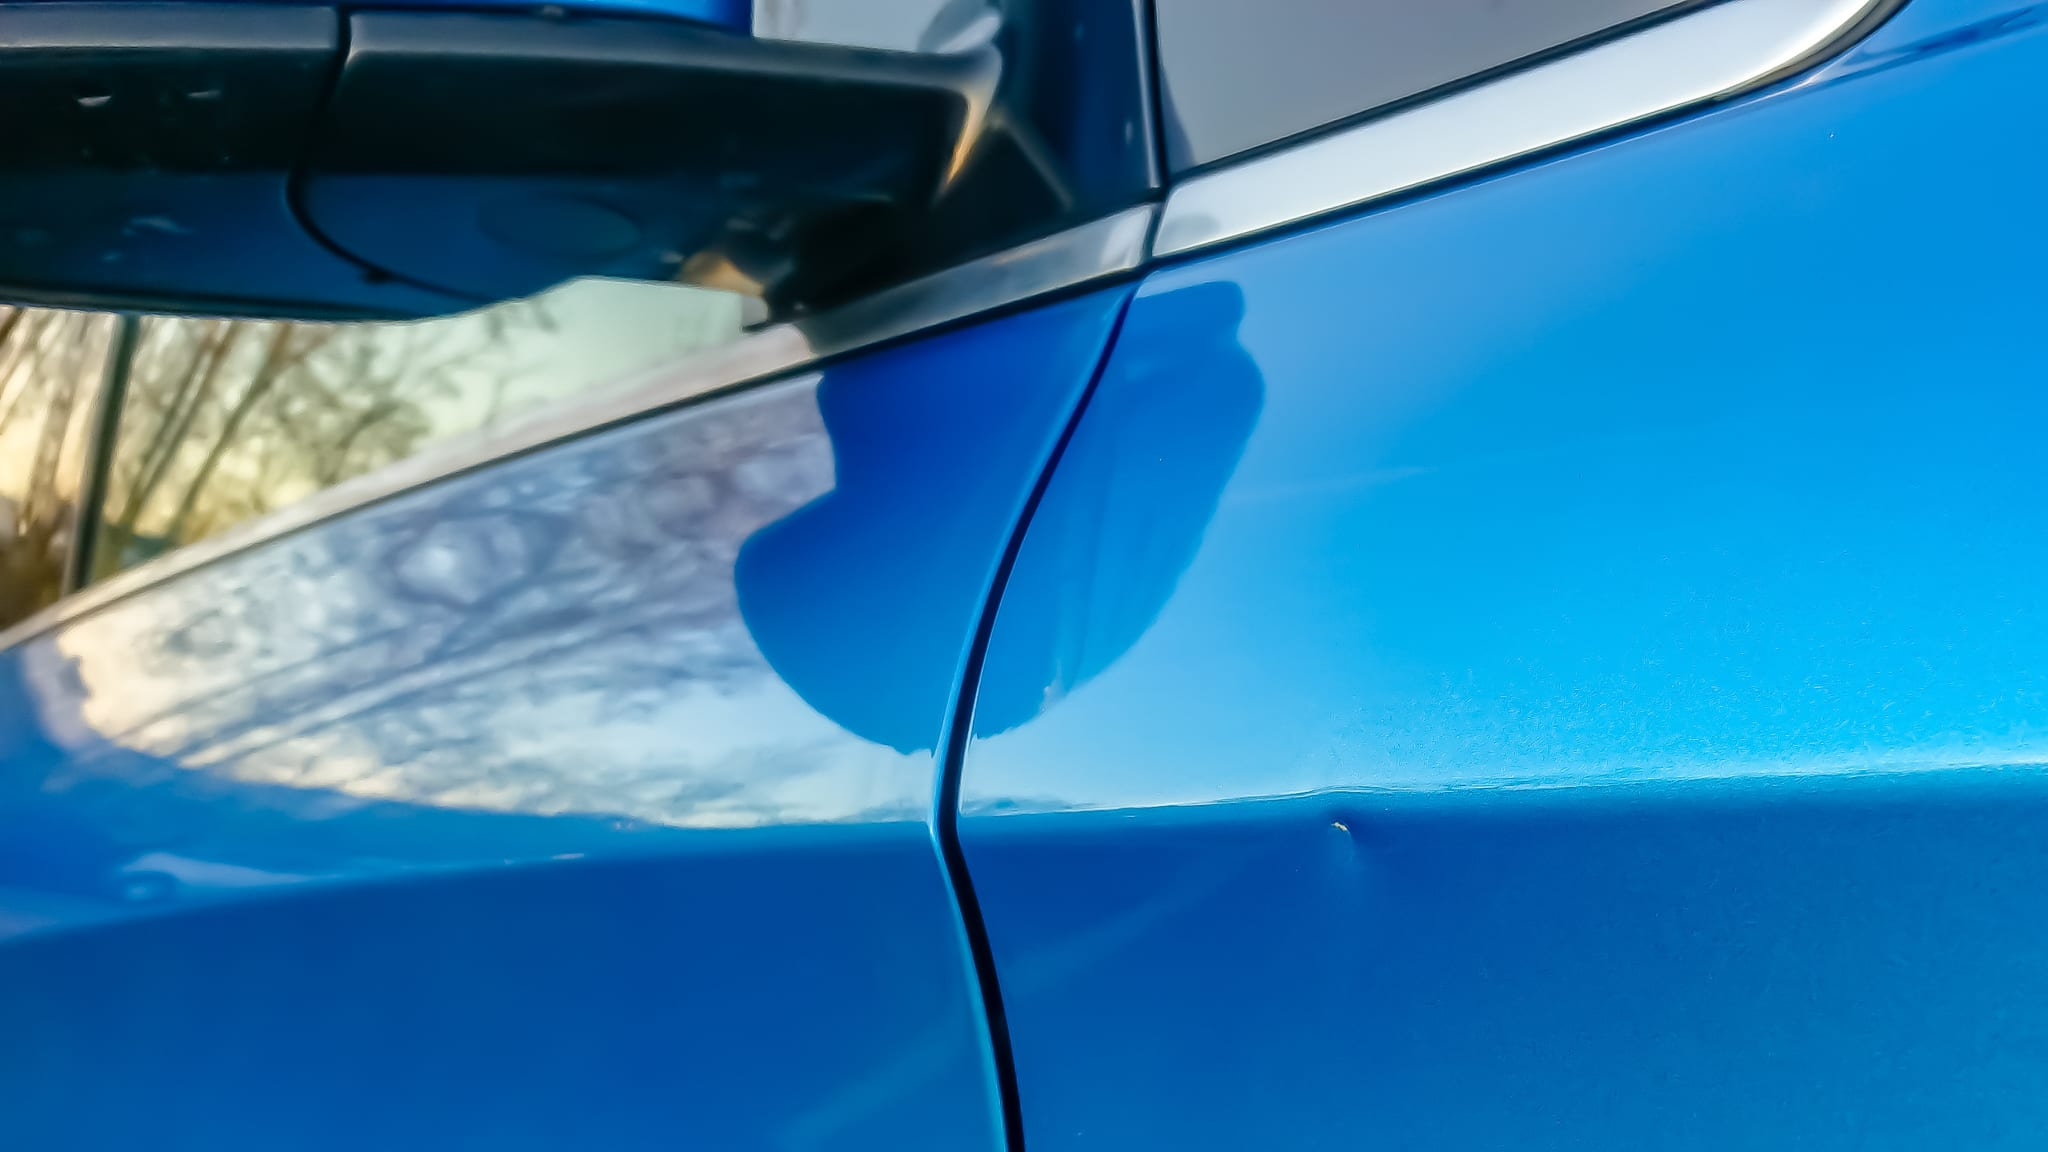 A small dent in the fender of a blue metallic car